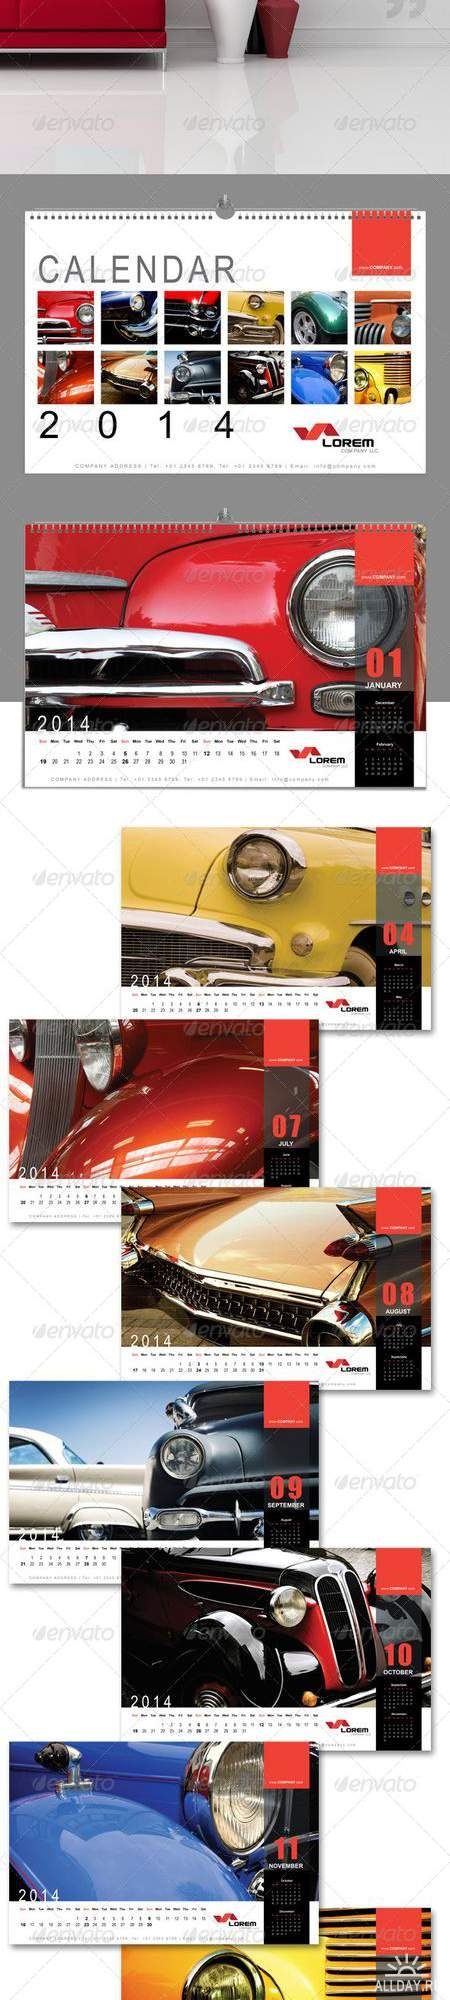 Best Calendars Images On   Calendar Life Planner And